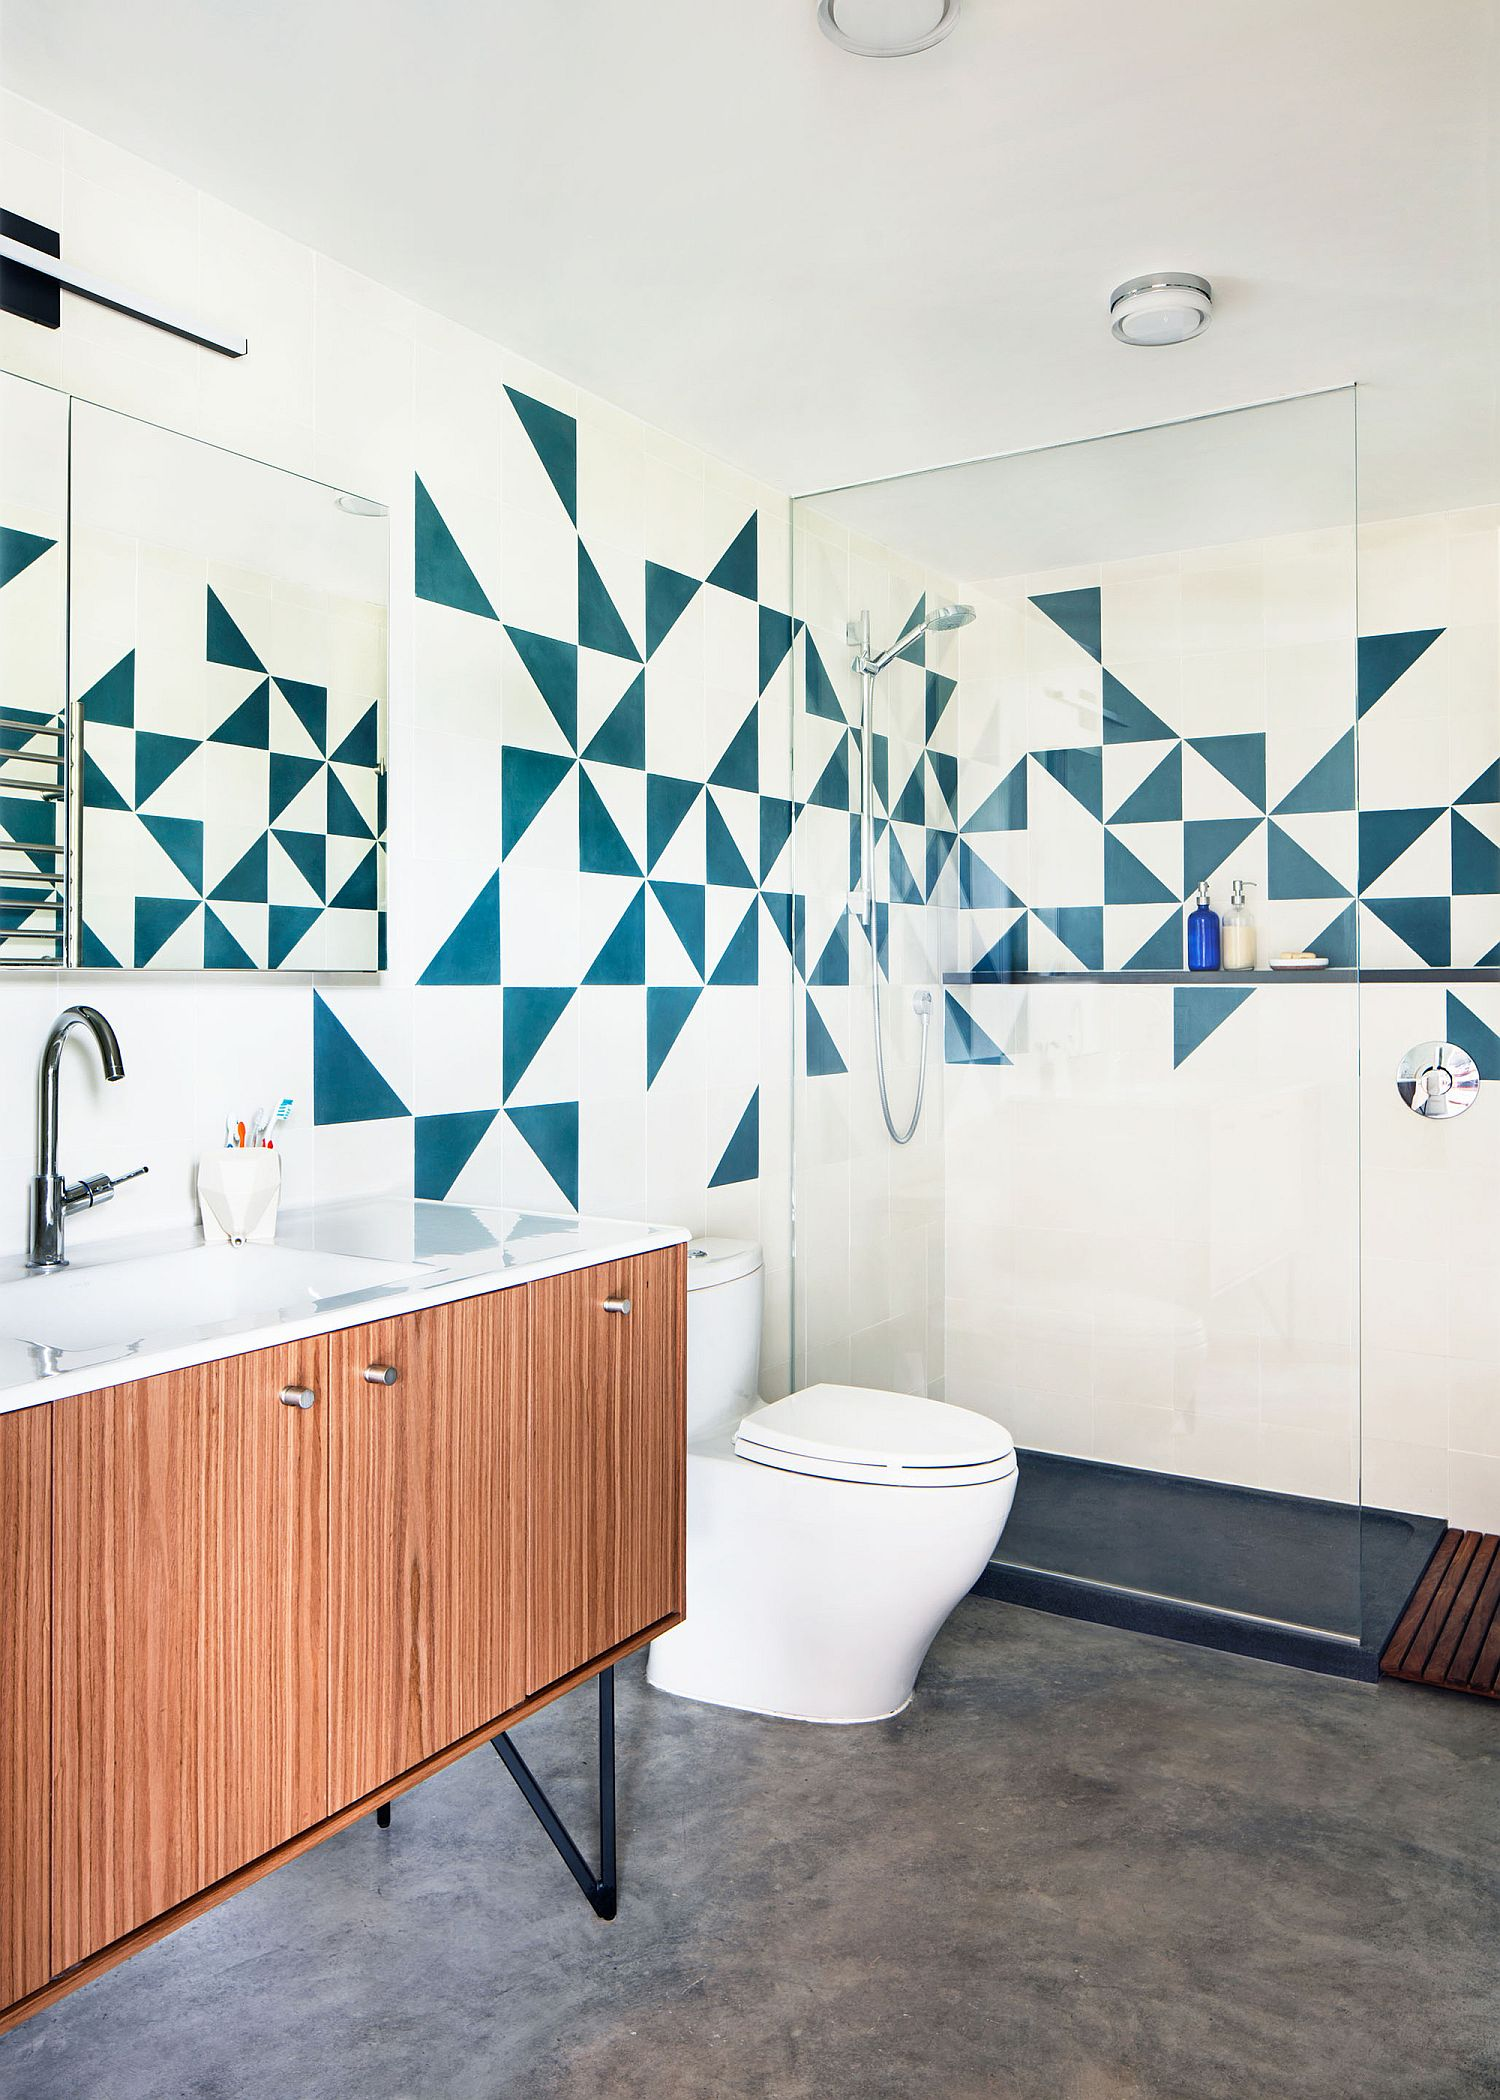 Tiles bring blue color and pattern to the bathroom in white